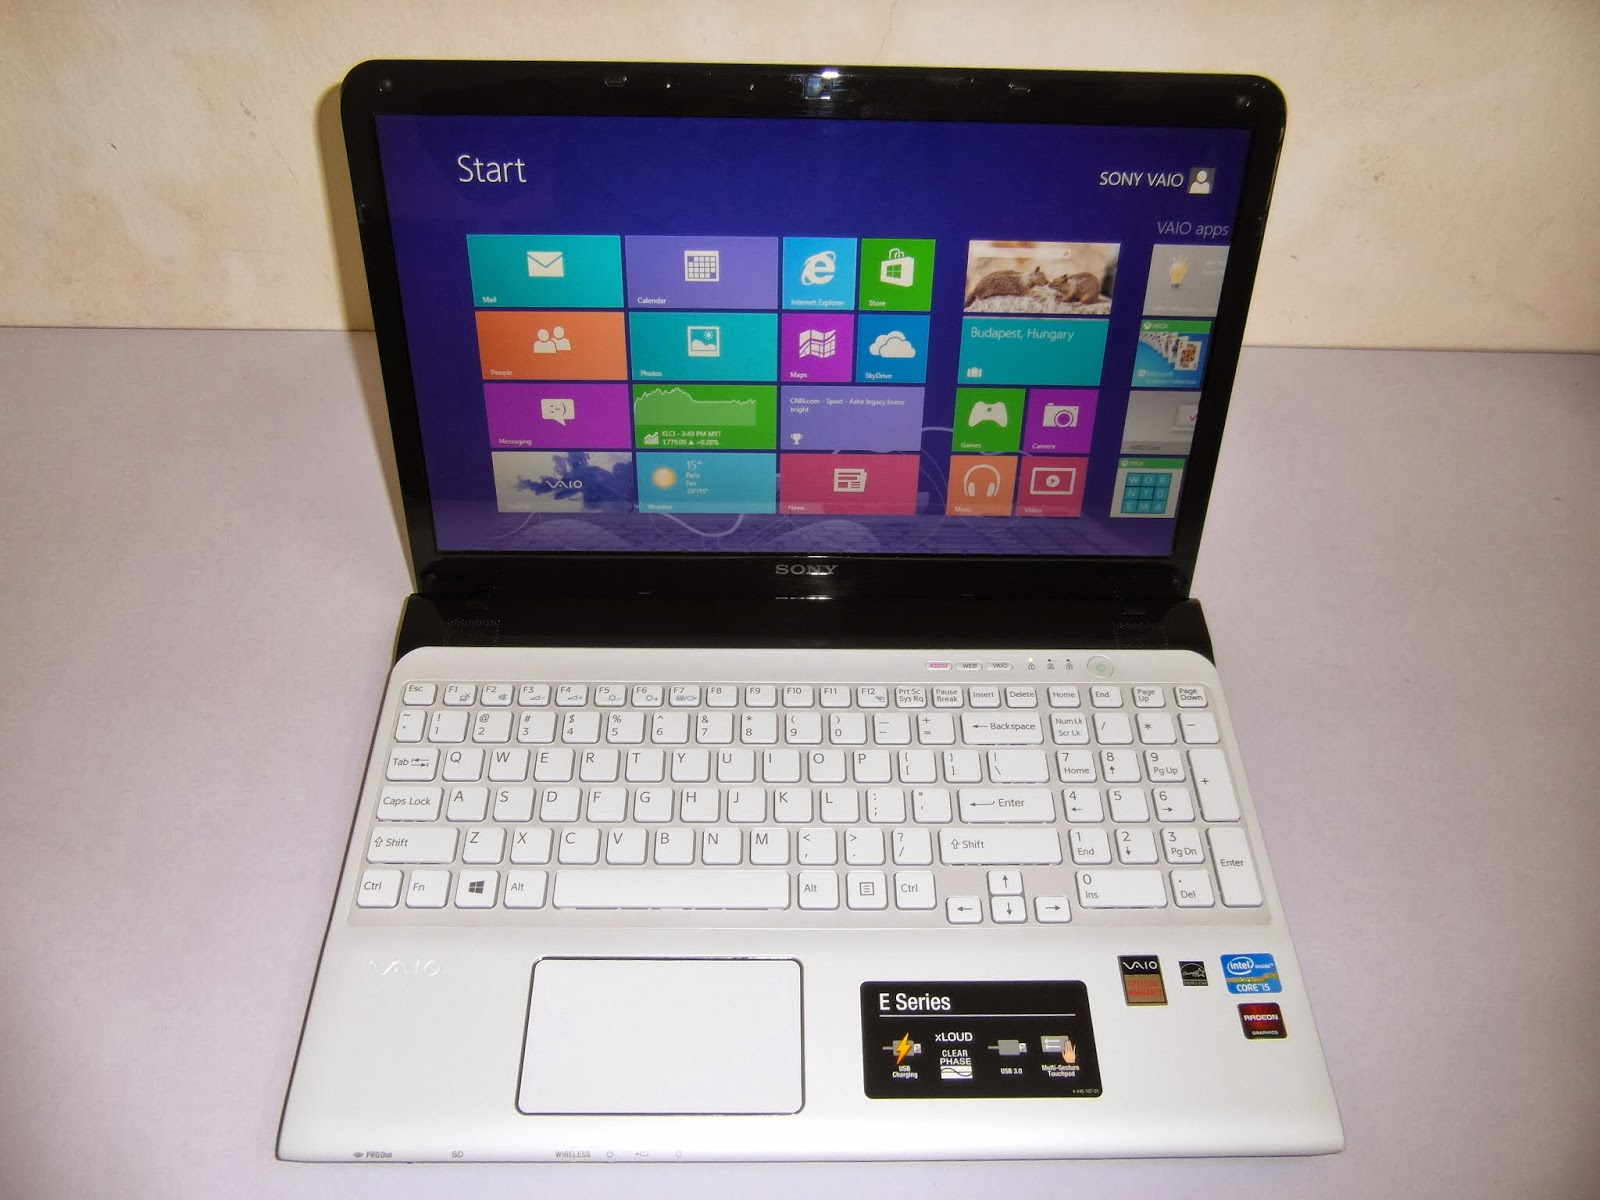 Three A Tech Computer Sales And Services Used Laptop Sony Vaio E Ram Ddr3 1gb Warranty Until 26 December 2014 Spec 3rd Generation Intel Core I5 3210m Processor 250 Ghz With Turbo Boost Up To 310 4gb